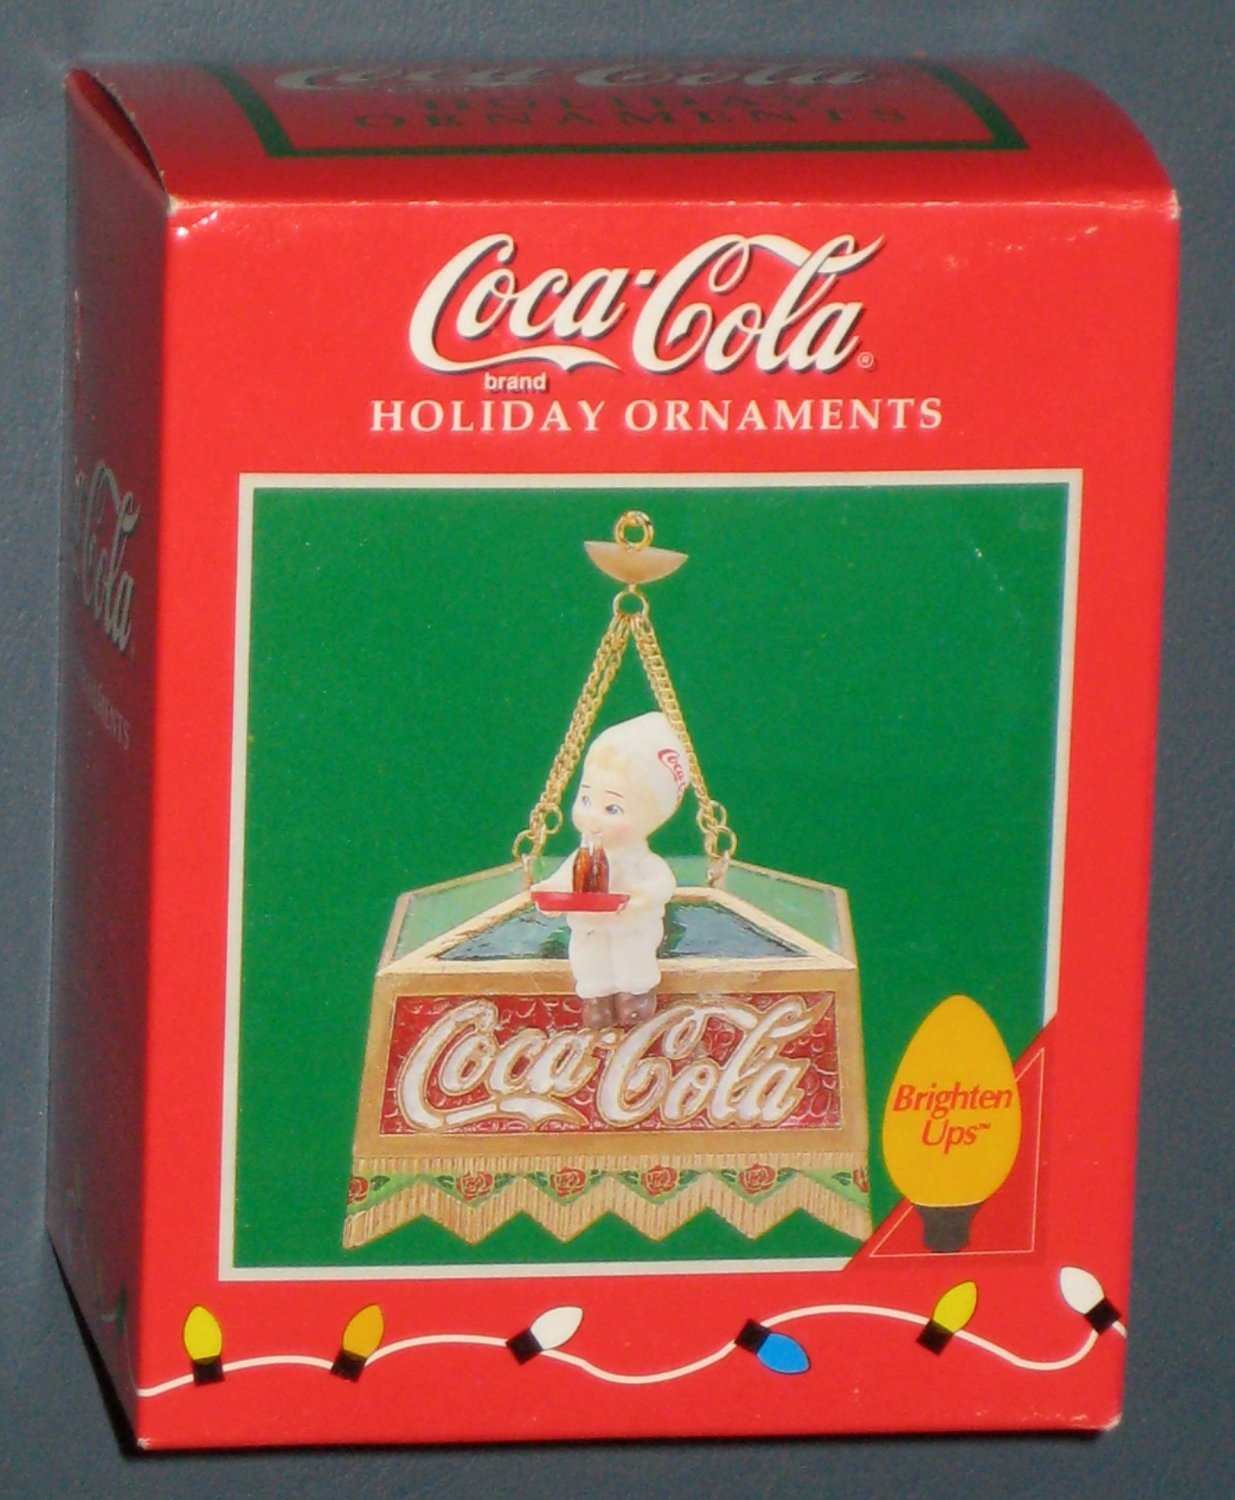 Coca-Cola Enesco Brighten Ups Christmas Ornament Soda Jerk Light Coke Holiday 209538 NIB 1996